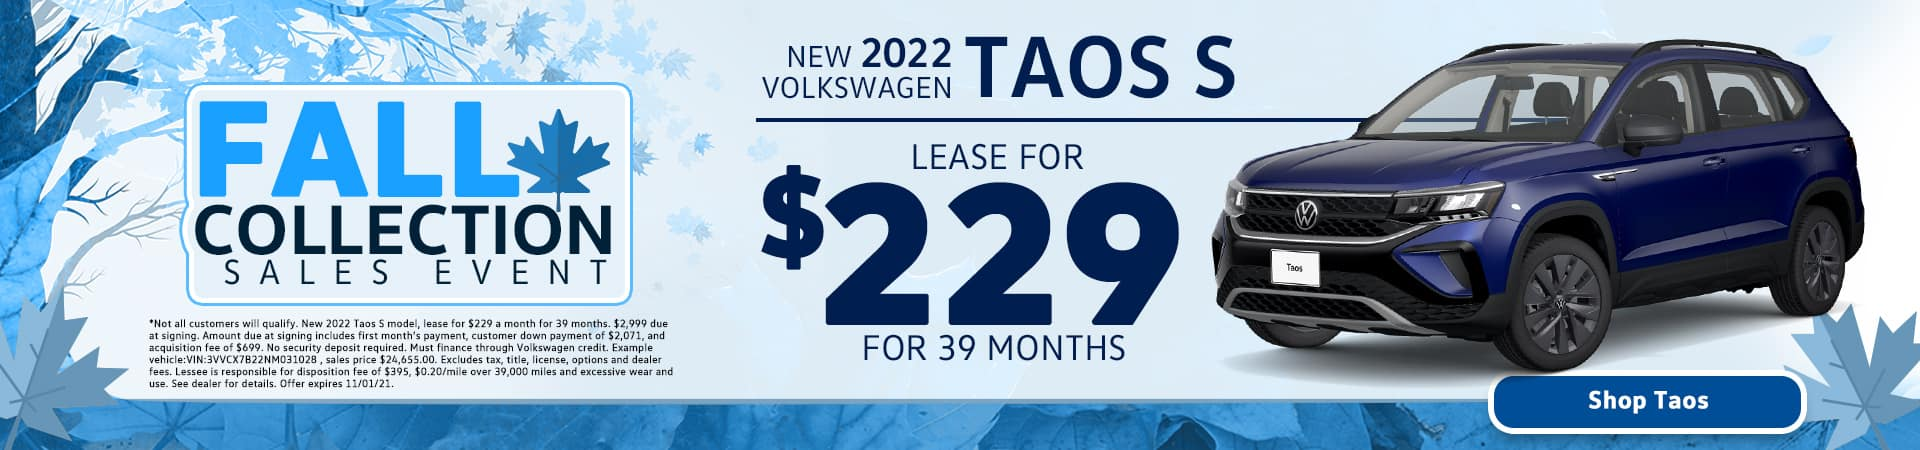 New 2022 Volkswagen Taos for Sale in Tampa, FL